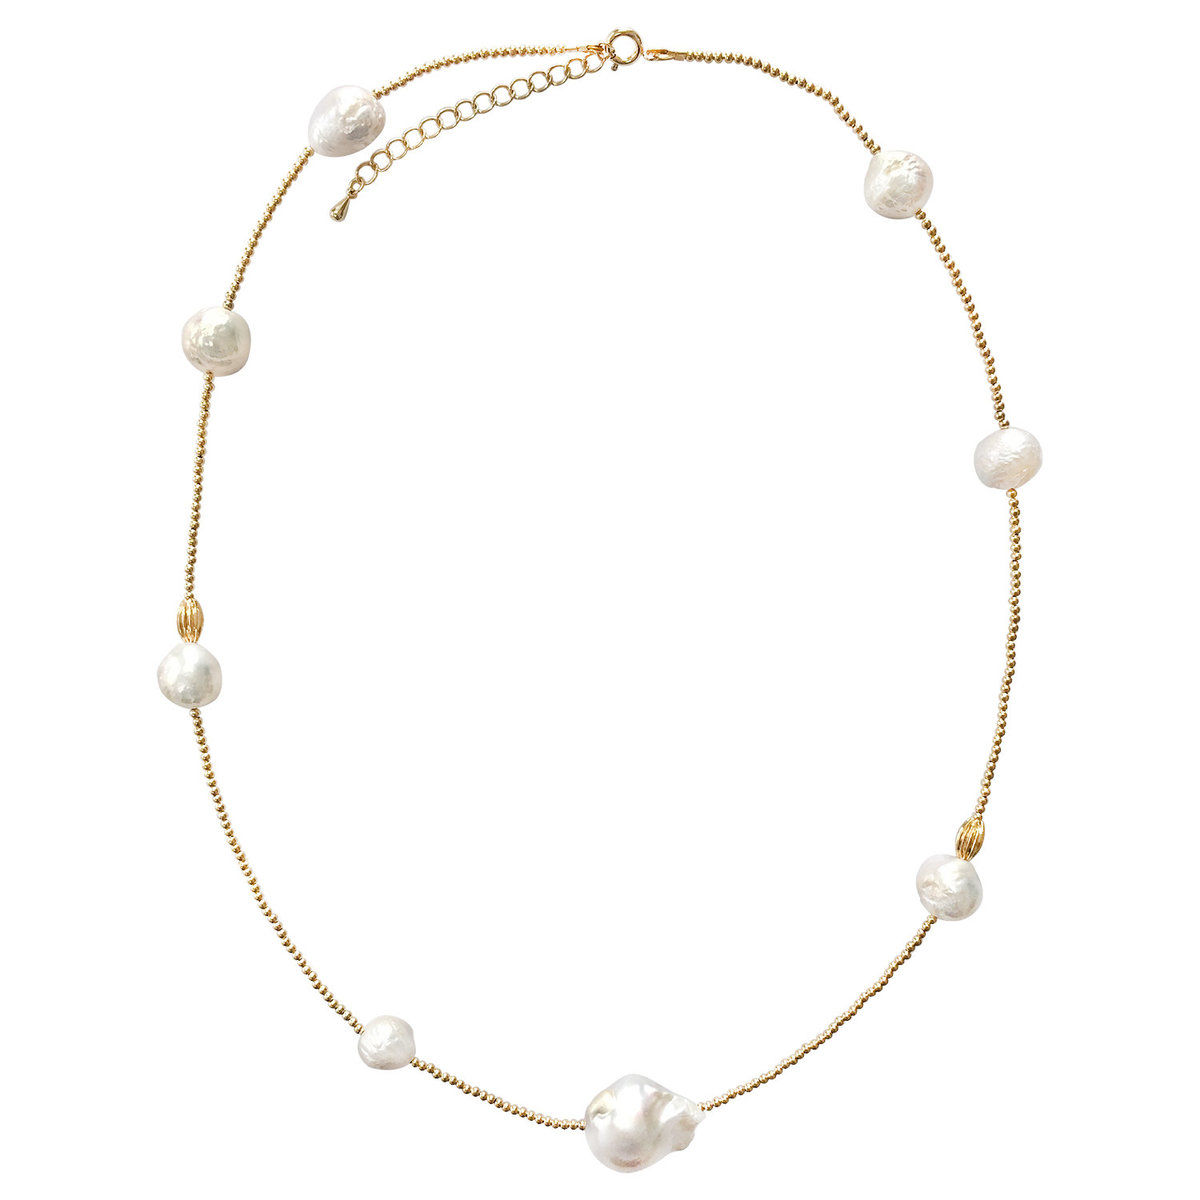 Freshwater Edison pearls with nugget Baroque pearls necklace